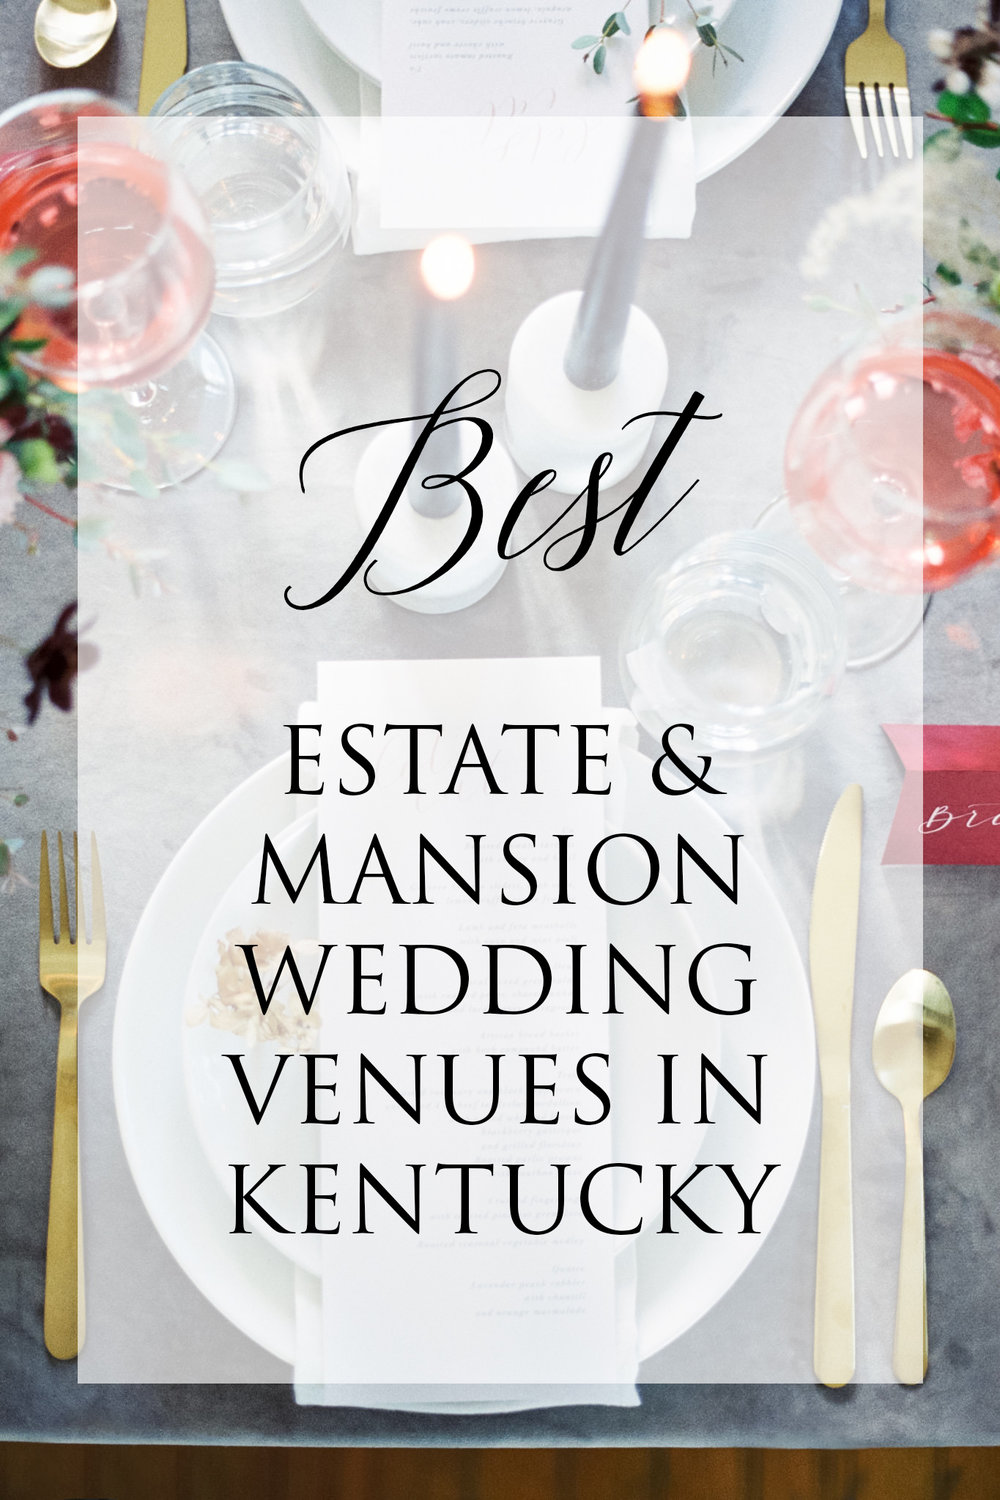 List of Estate & Mansion Wedding Venues in Kentucky - Take a look at some of the top estate and mansion wedding venues in the Bluegrass state...read more